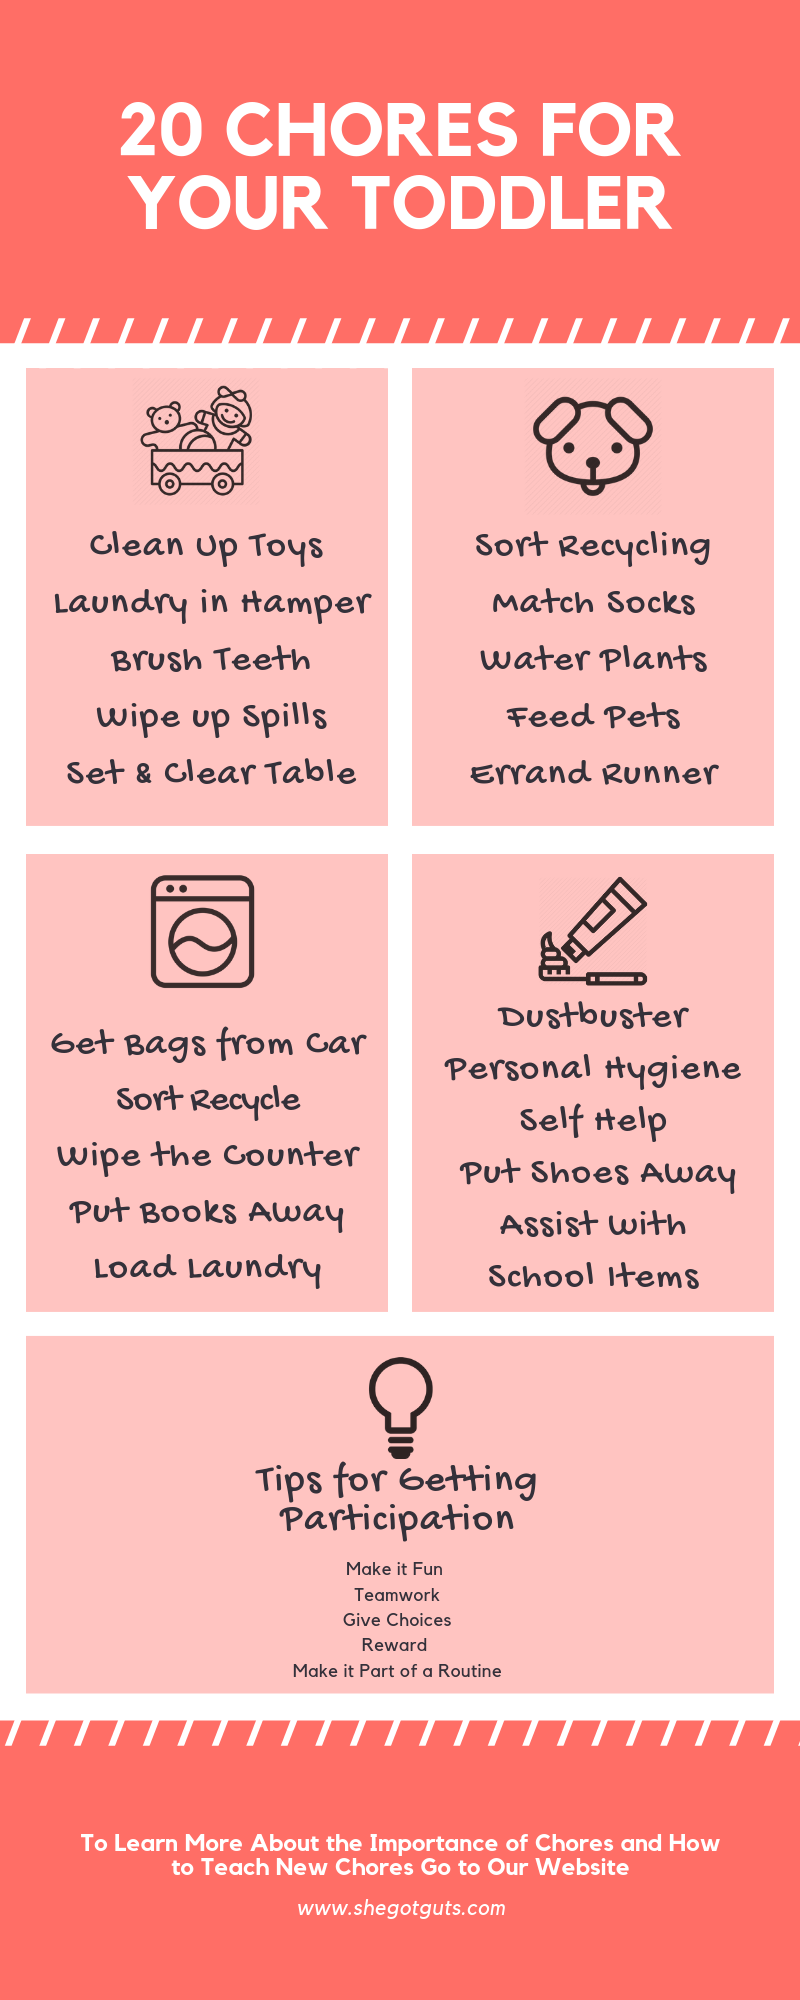 20 Chores for Your Toddler - By She Got Guts (1).png